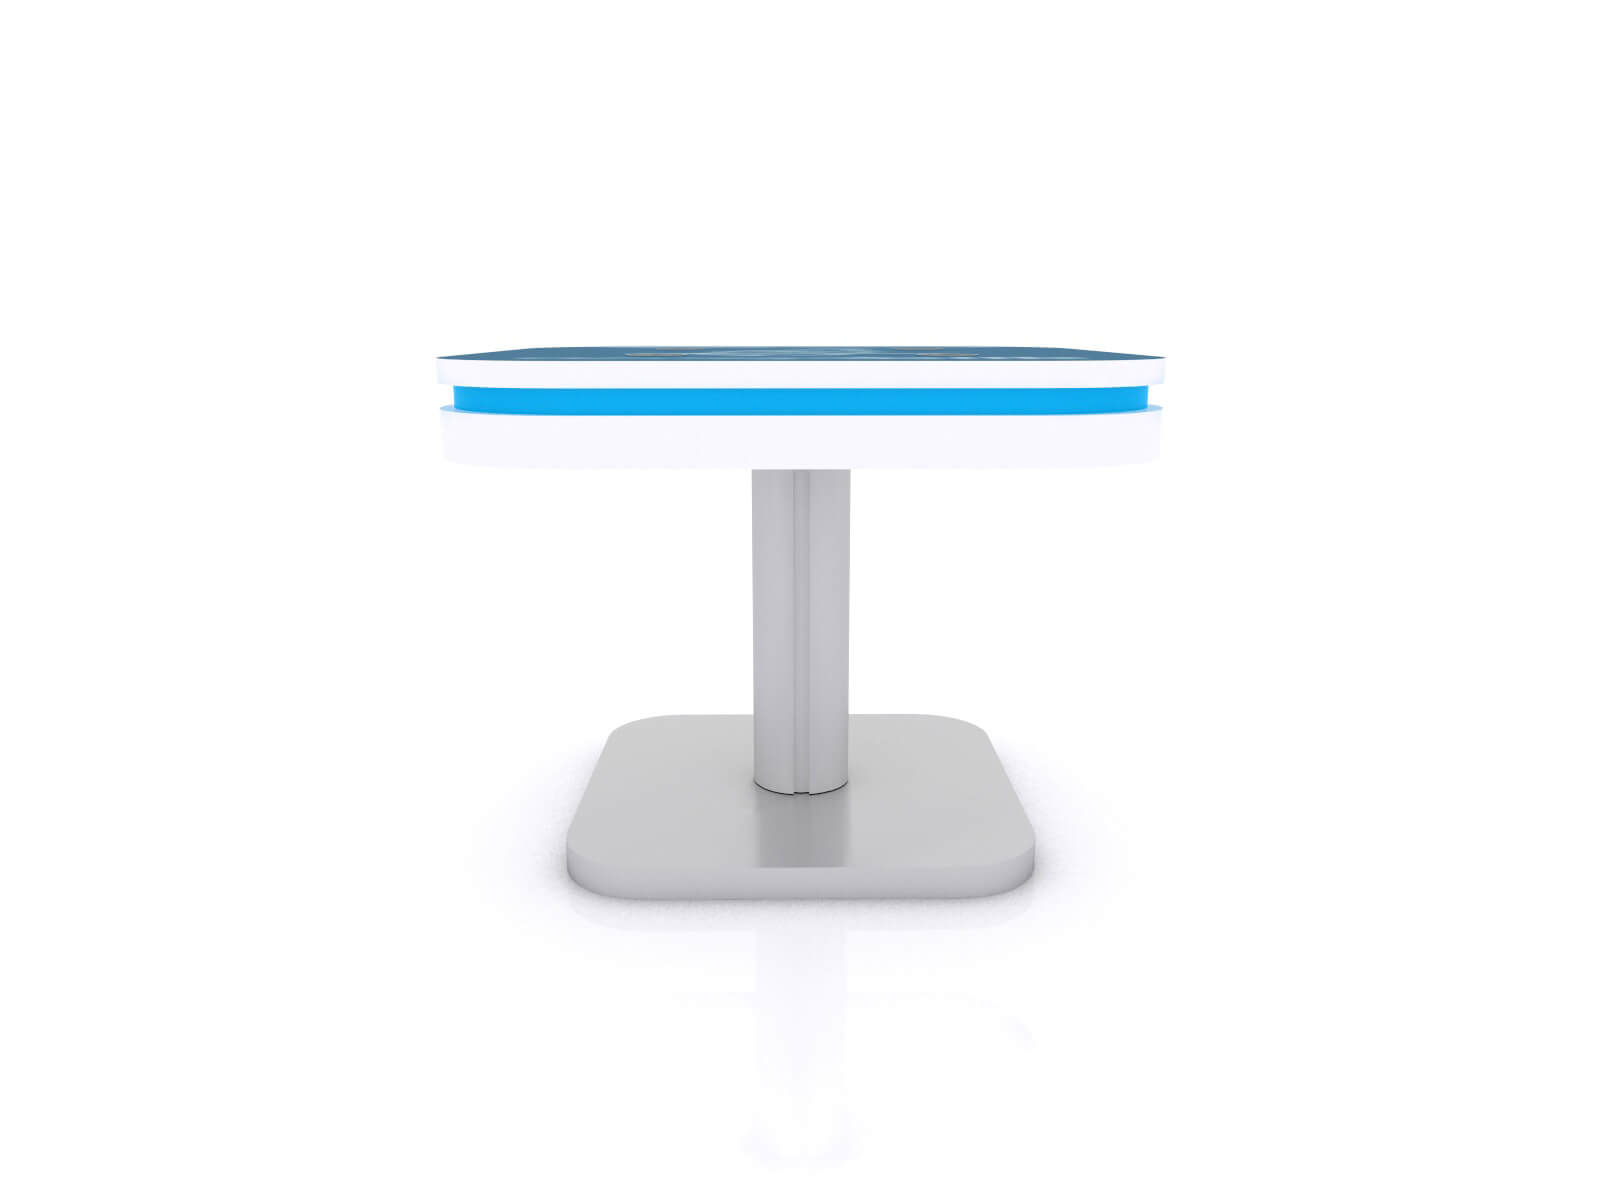 MOD-1455 Wireless Event Charging Station - image 3